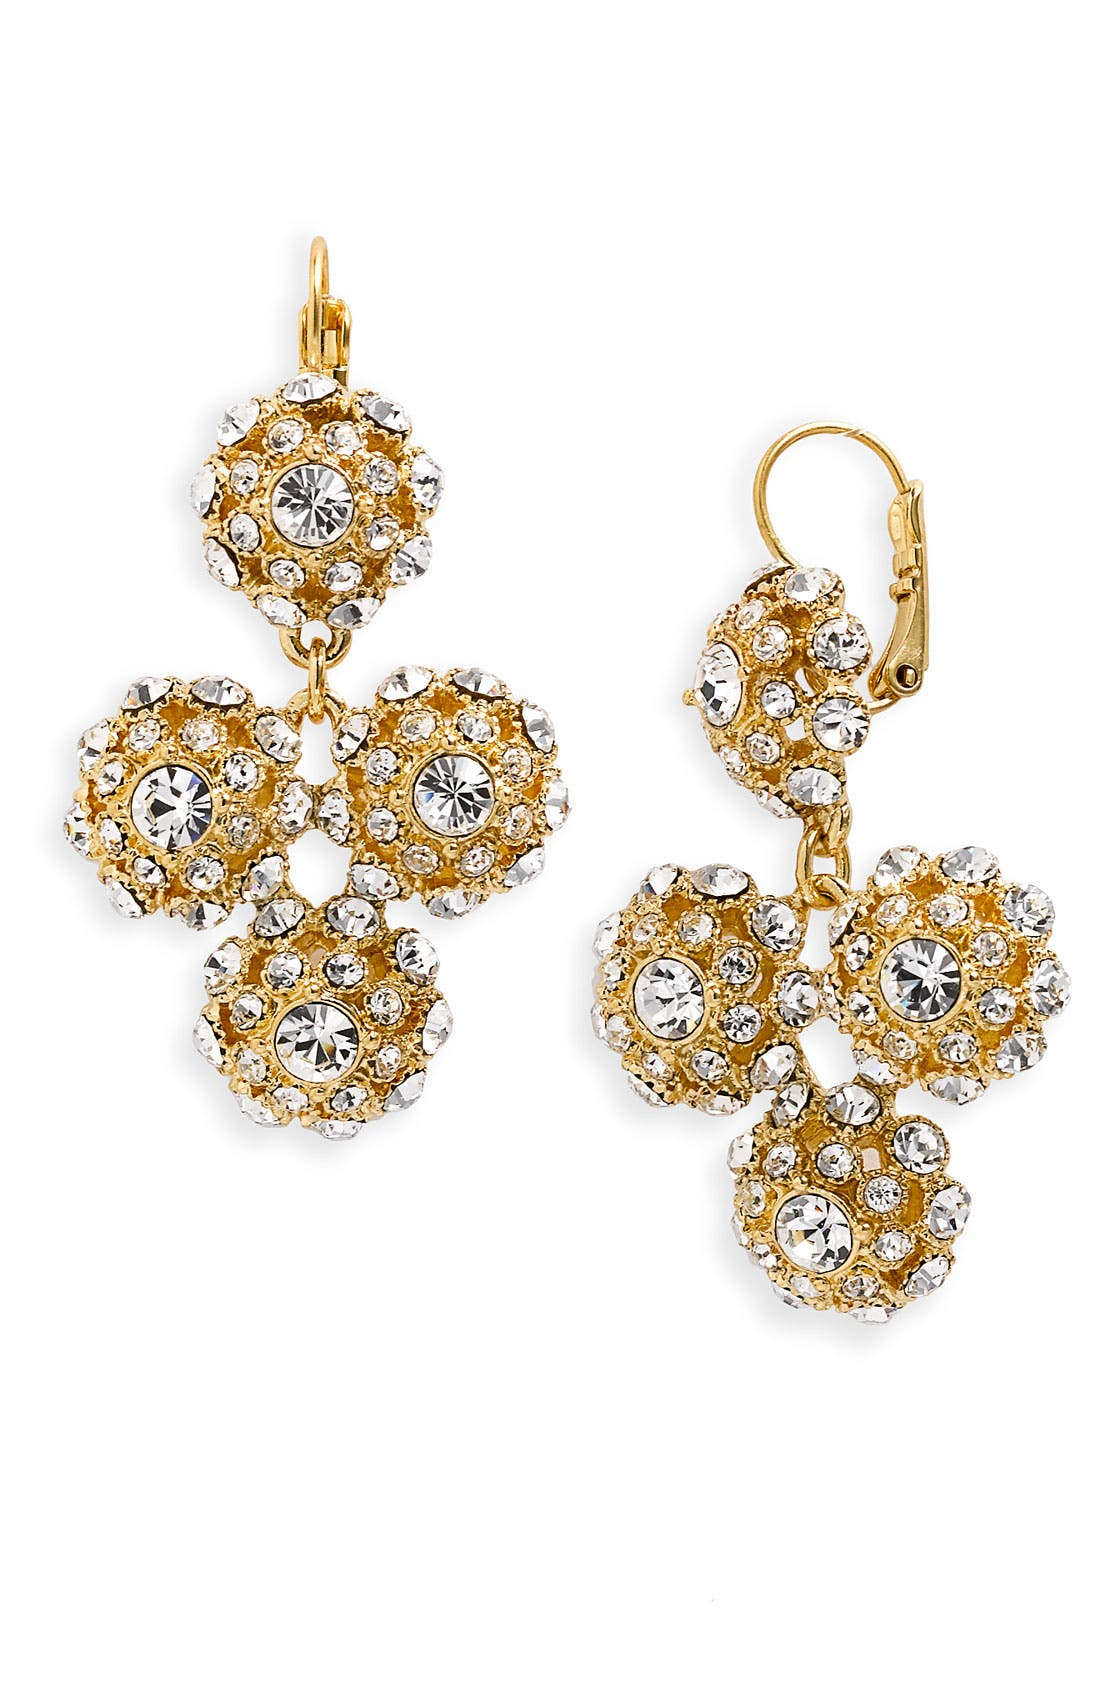 Main Image - kate spade new york 'putting on the ritz' chandelier earrings